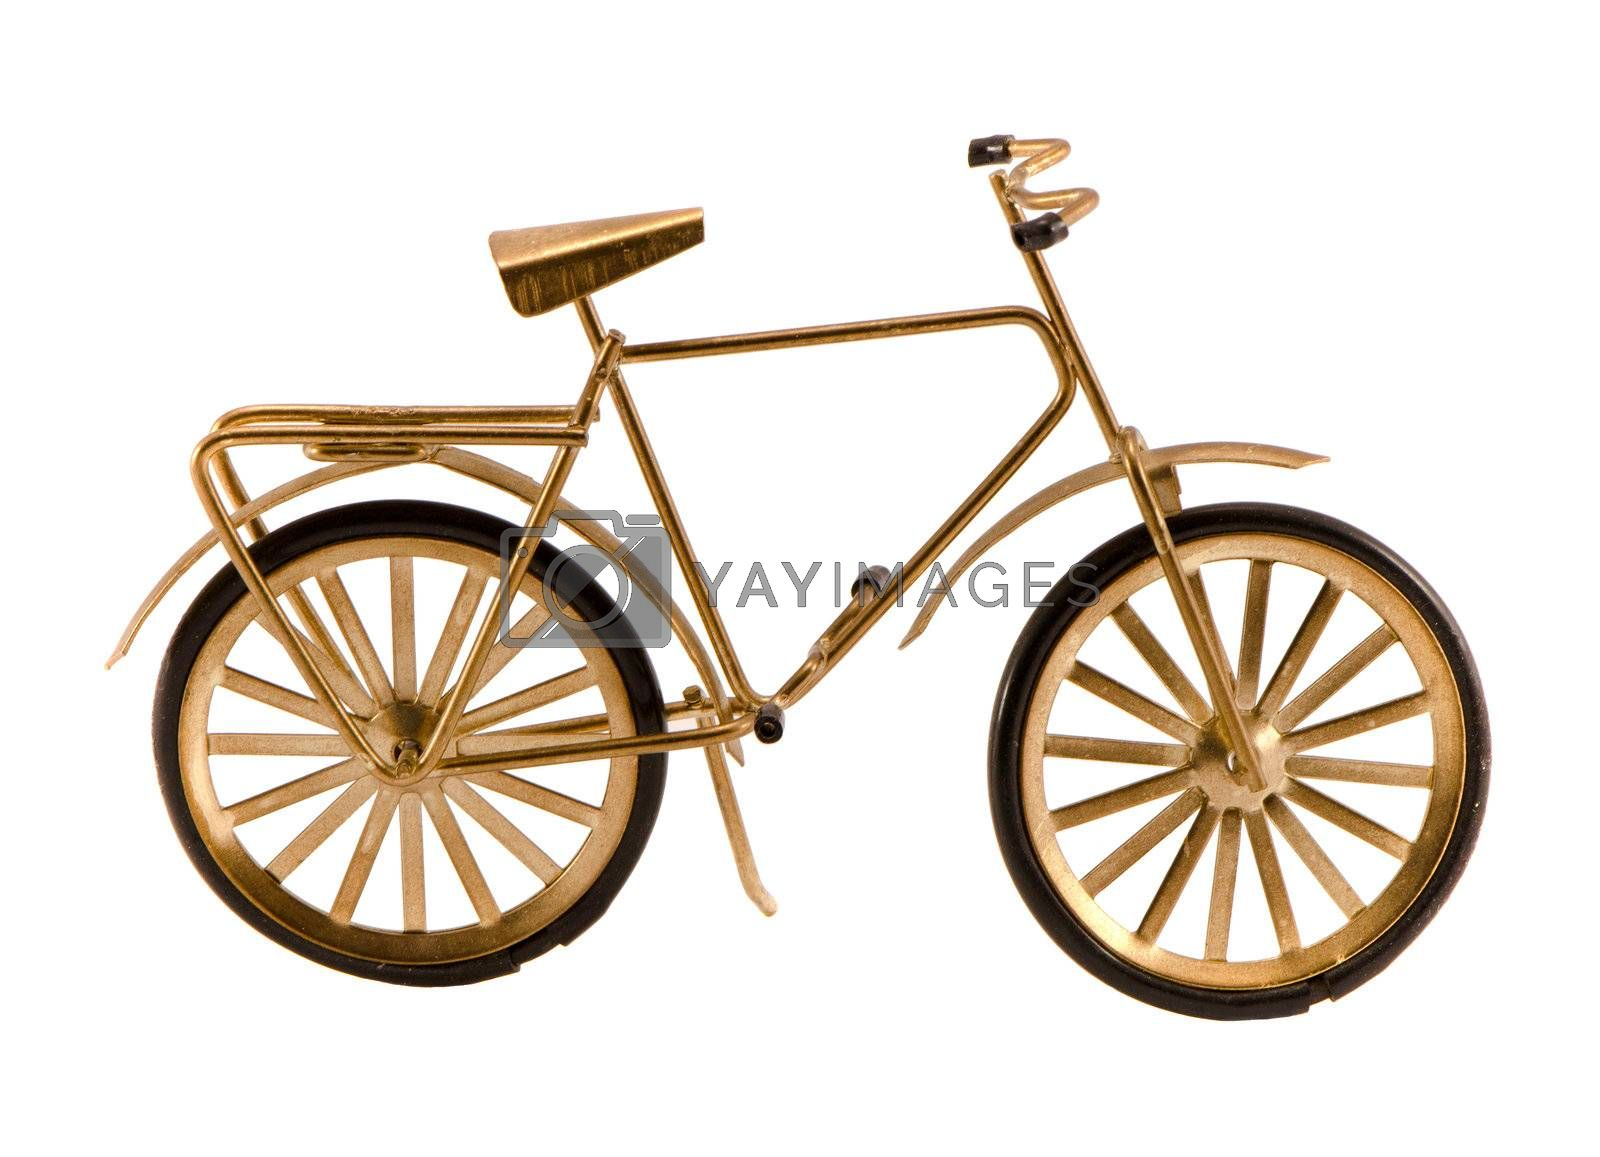 Small gold color toy bicycle isolated on white background.